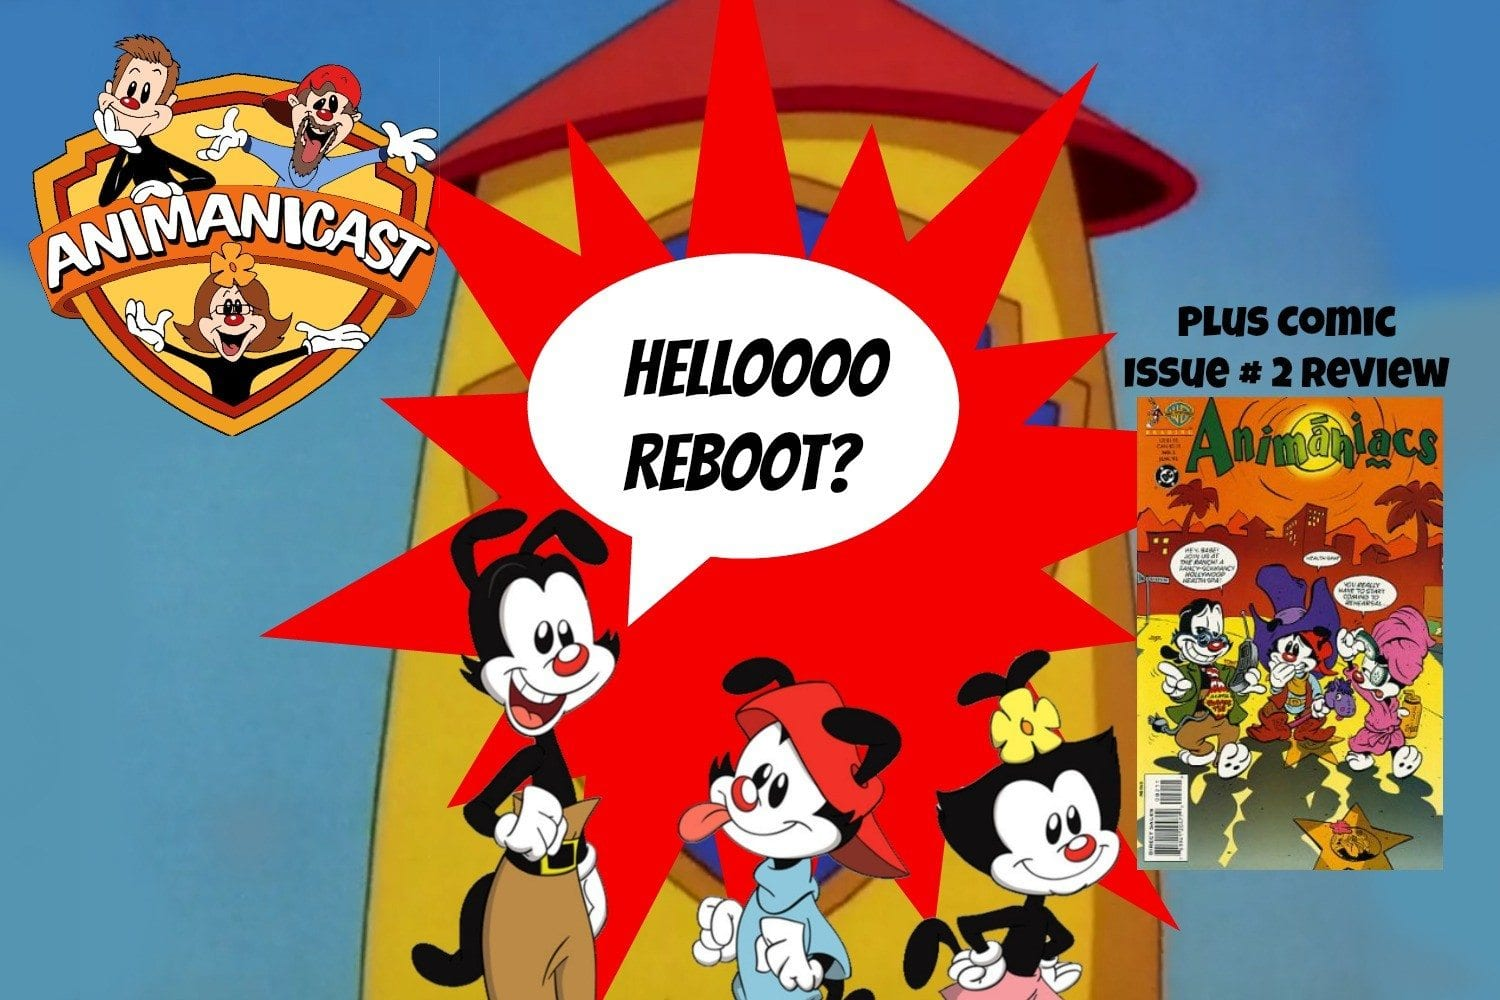 Animanicast #48a: Discussing A Possible Animaniacs Reboot, Phoenix Comicon and Comics Issue #2